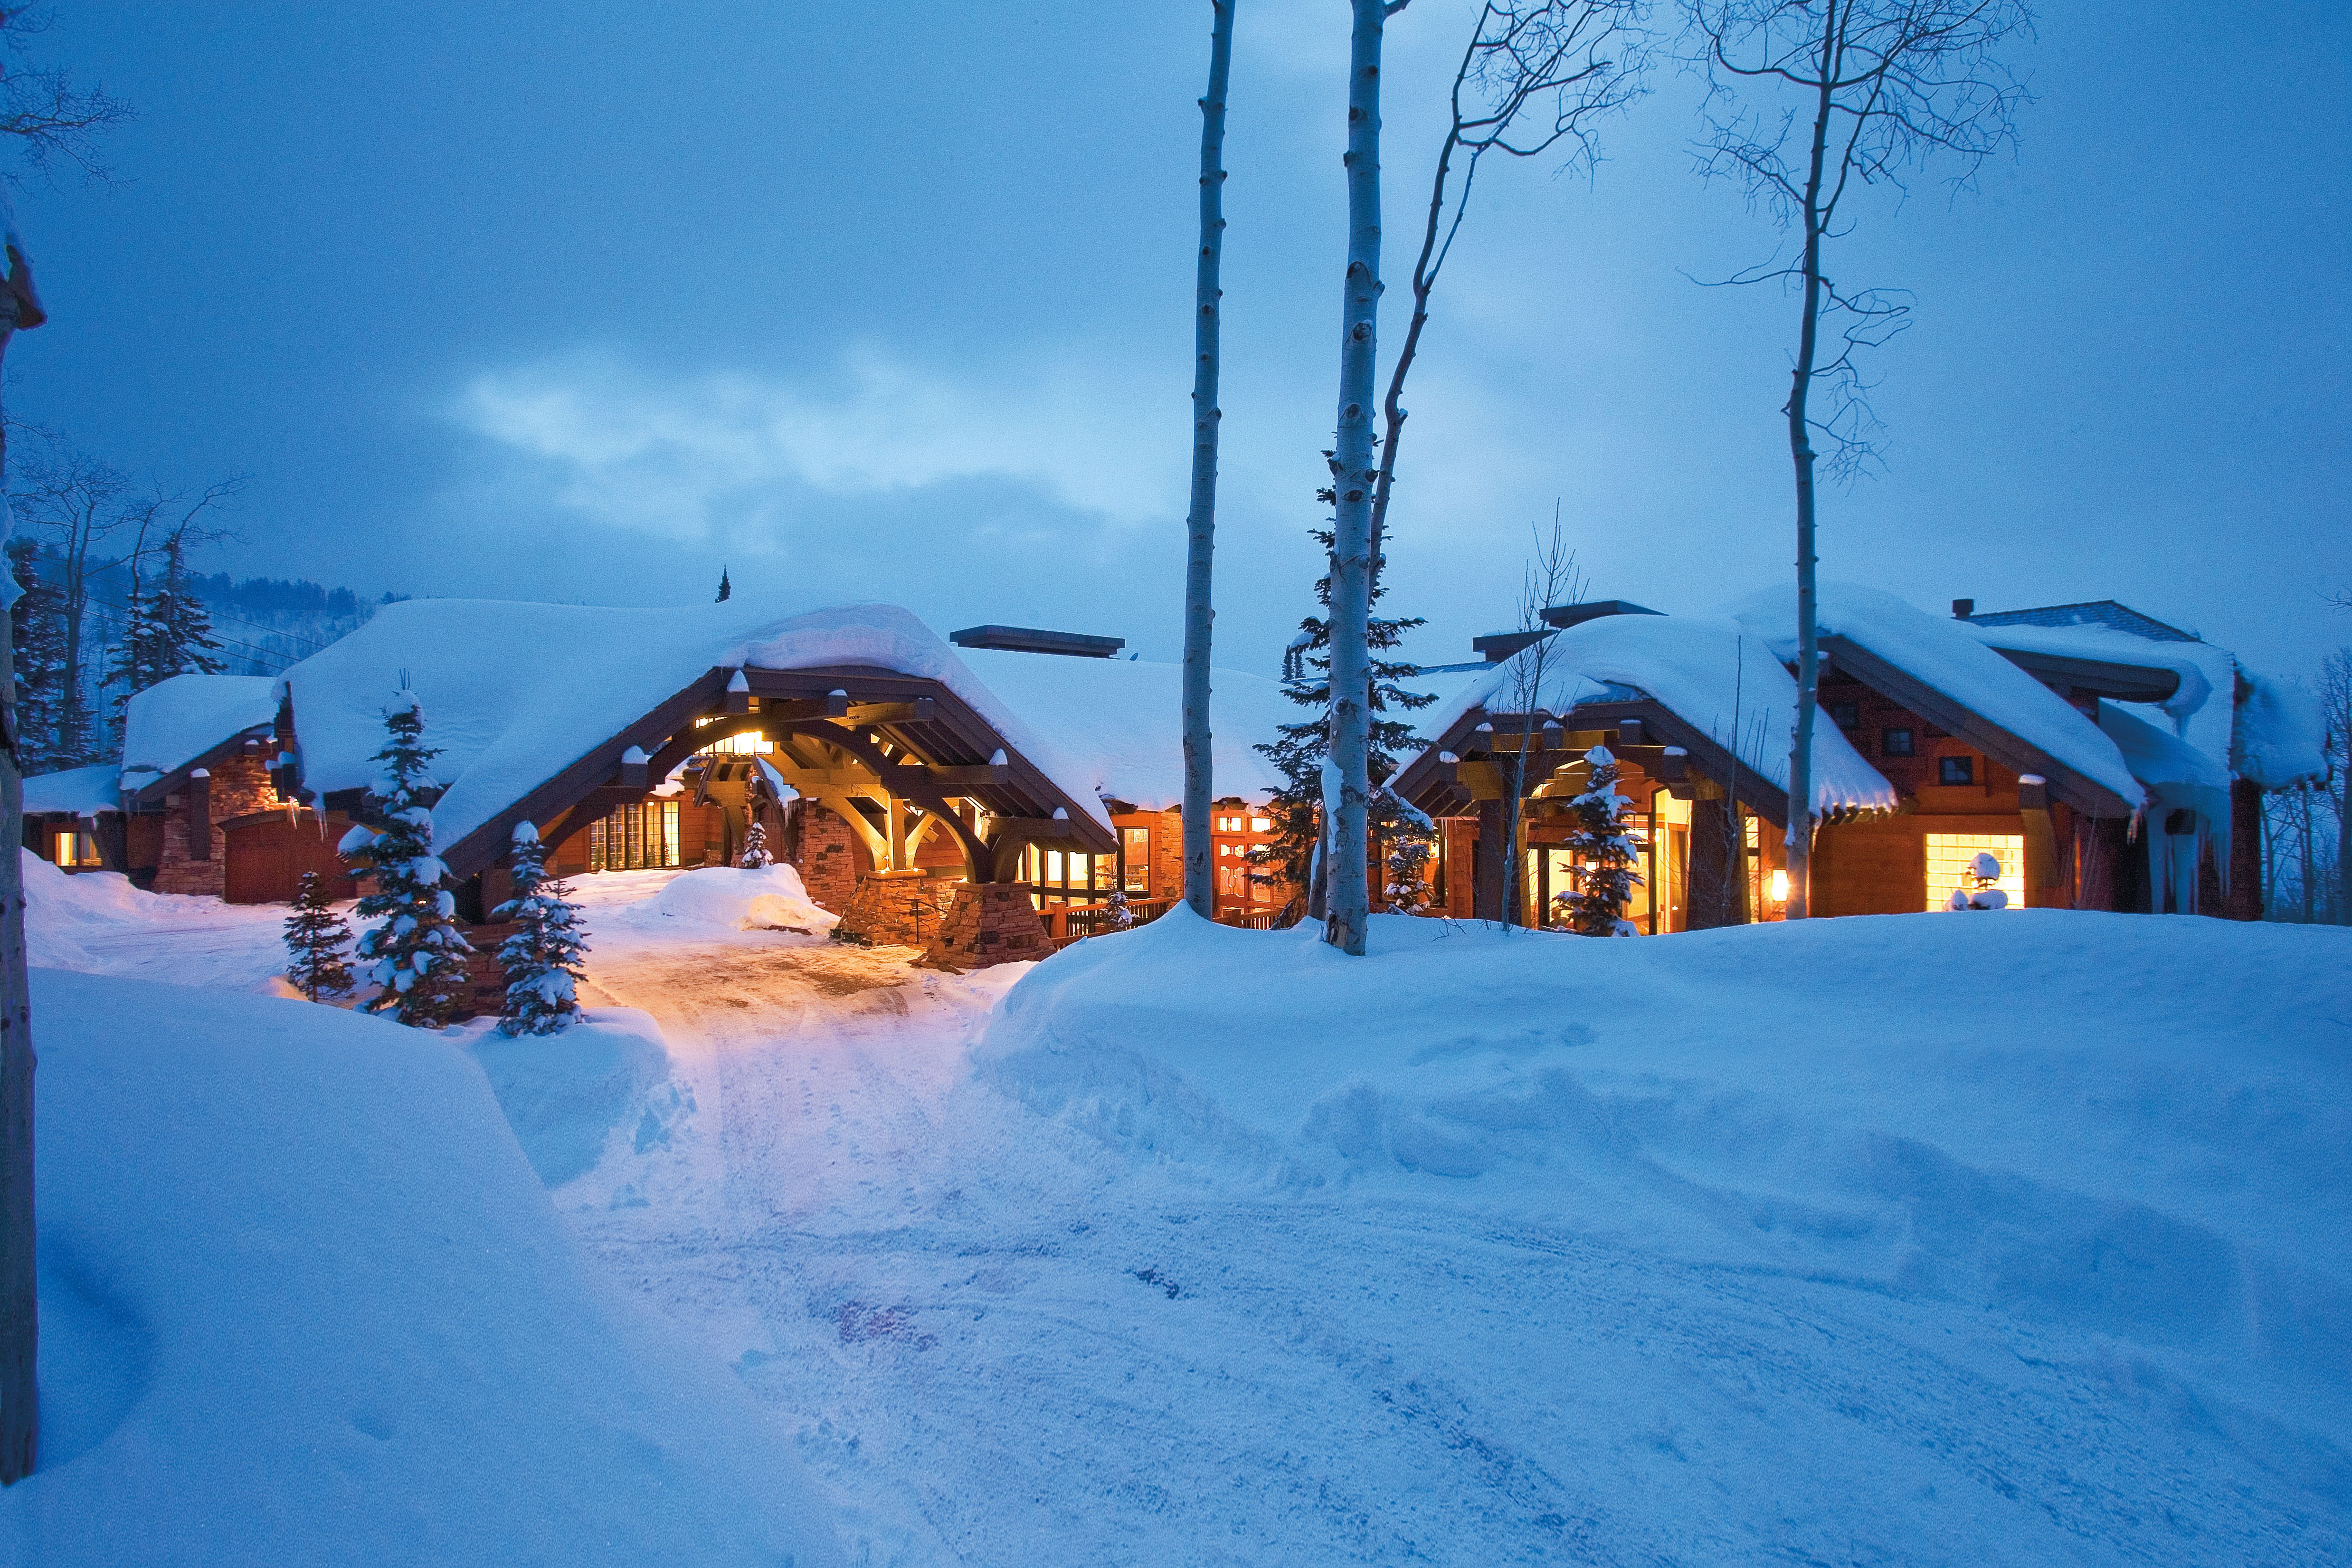 Park city winter 2013 home in the clouds exterior featured.jpg extvvs